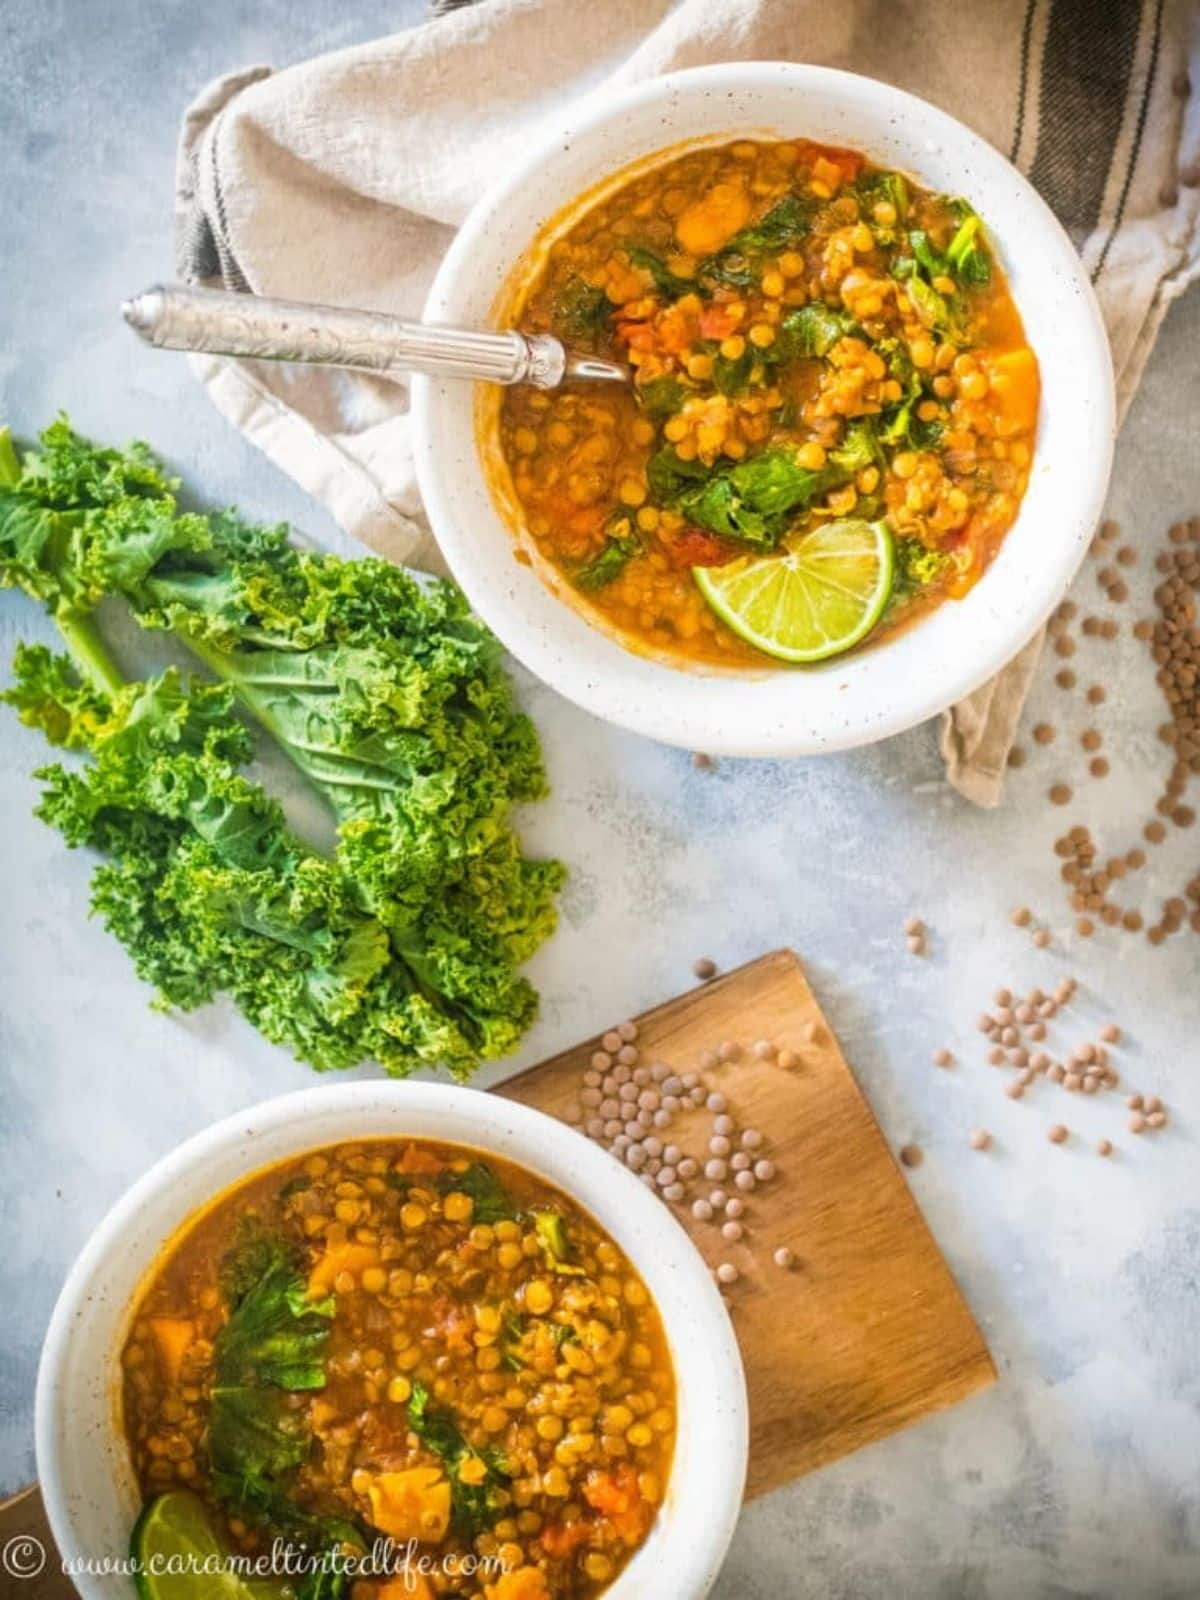 Two while bowls of lentil soup on a table with kale and raw lentils in the background